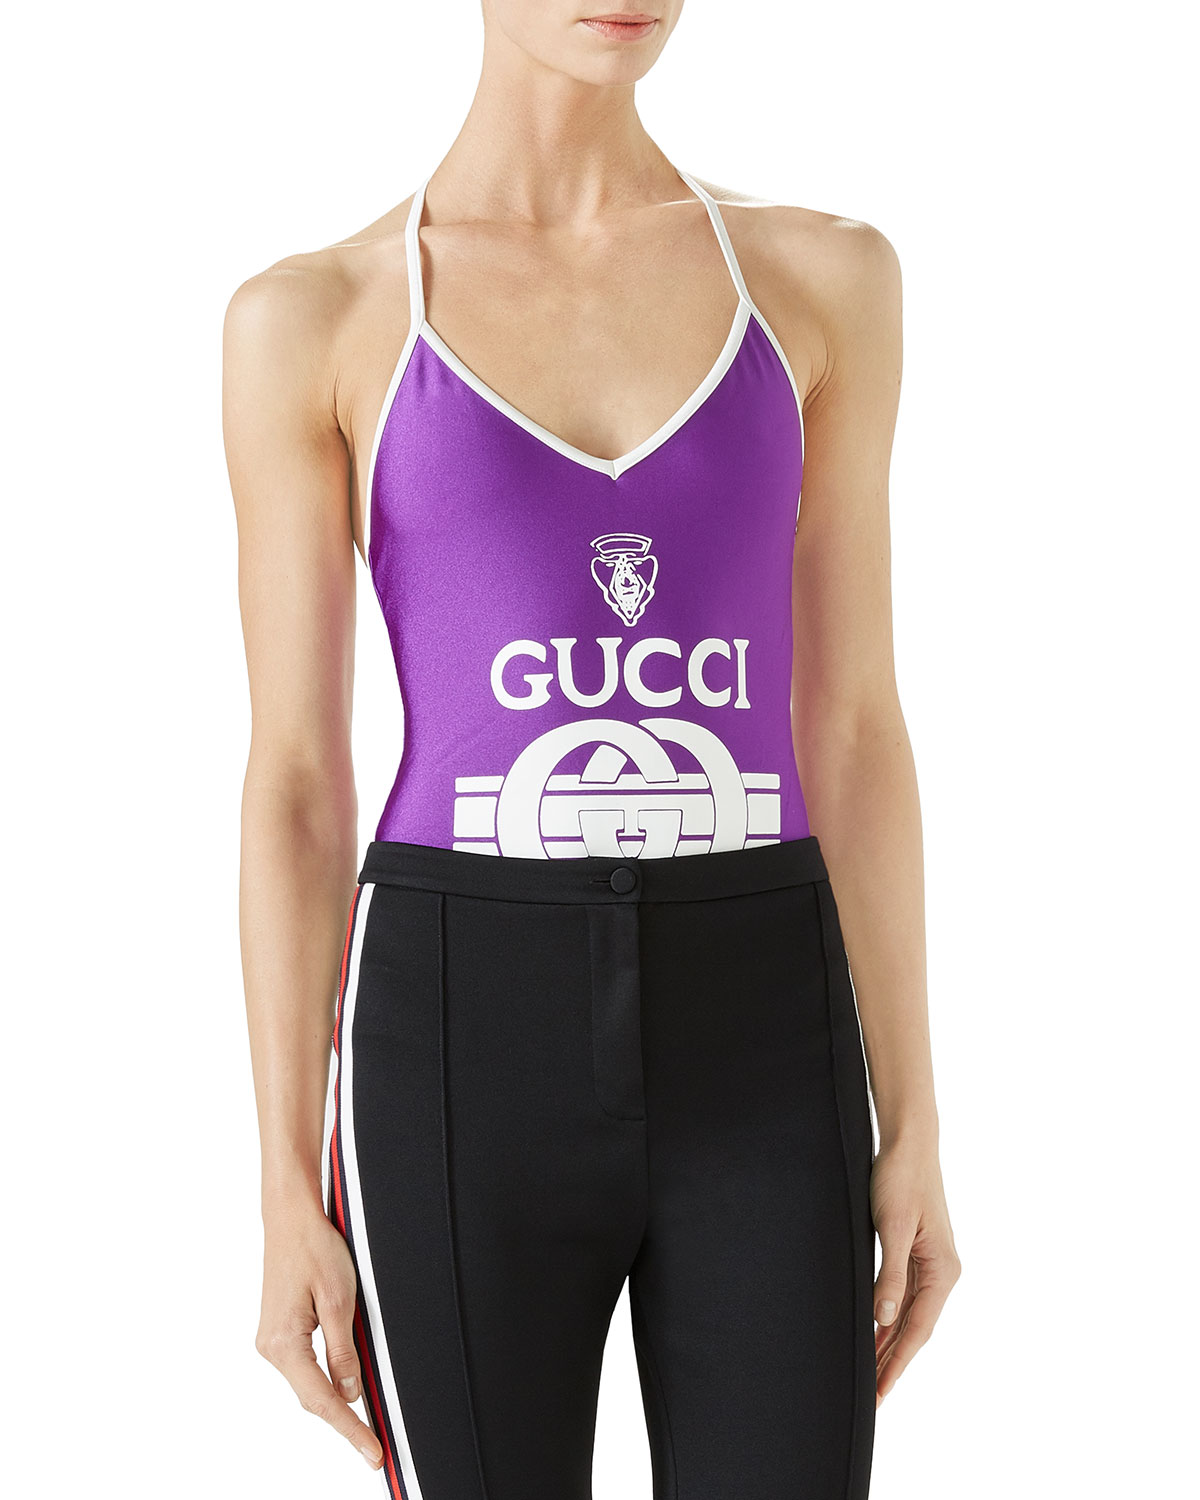 502f661280 One-Piece Swimsuit in Sparkling Lycra® w/ Gucci Print